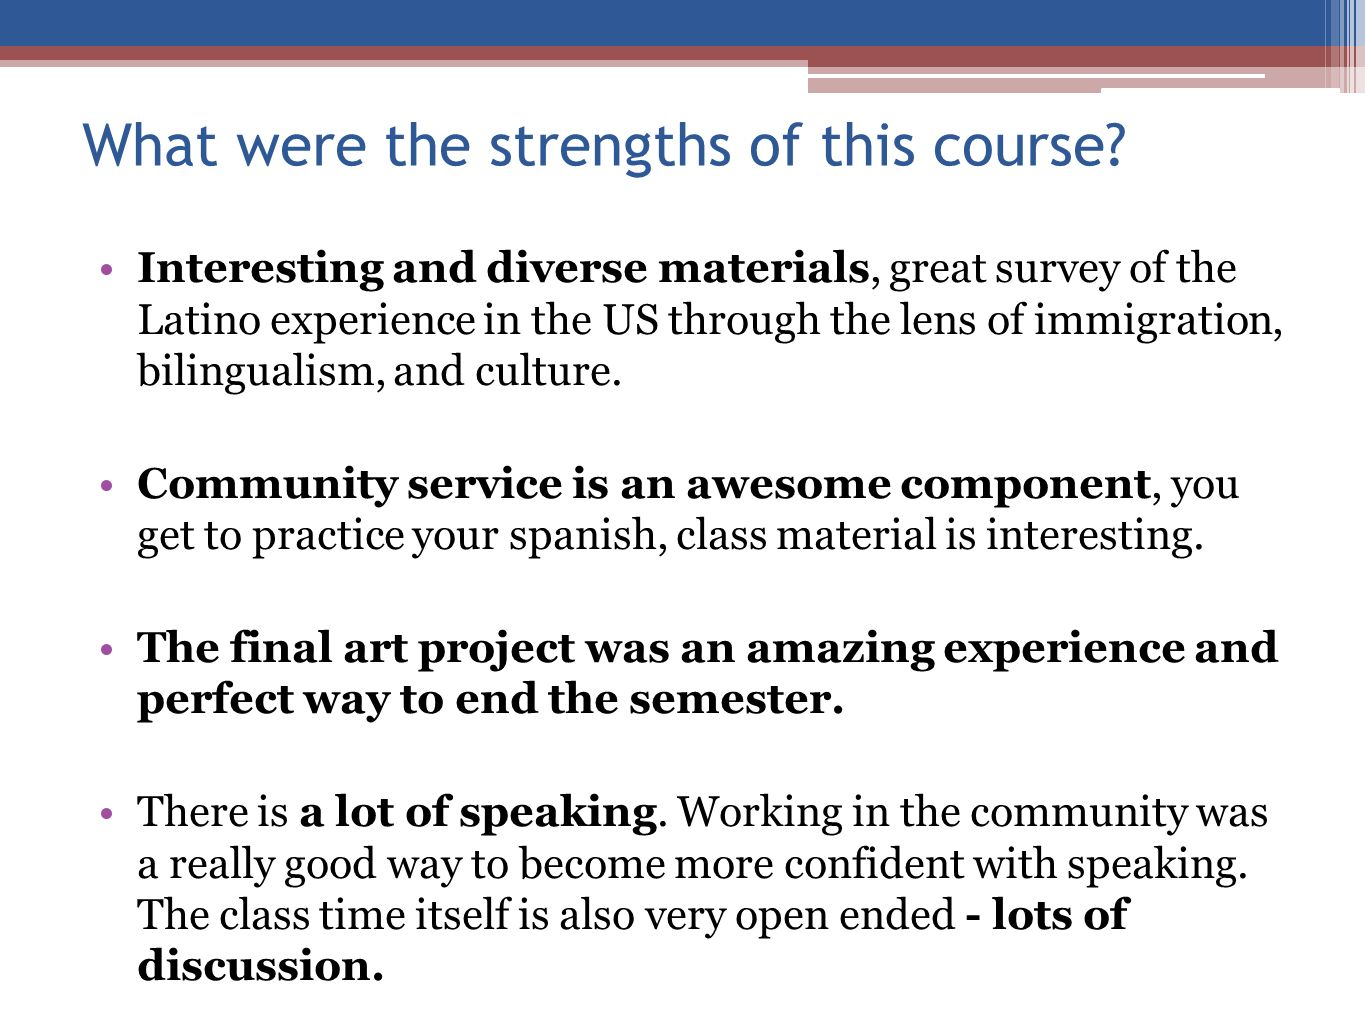 What were the strengths of this course? Interesting and diverse materials, great survey of the Latino experience in the US through the lens of immigra